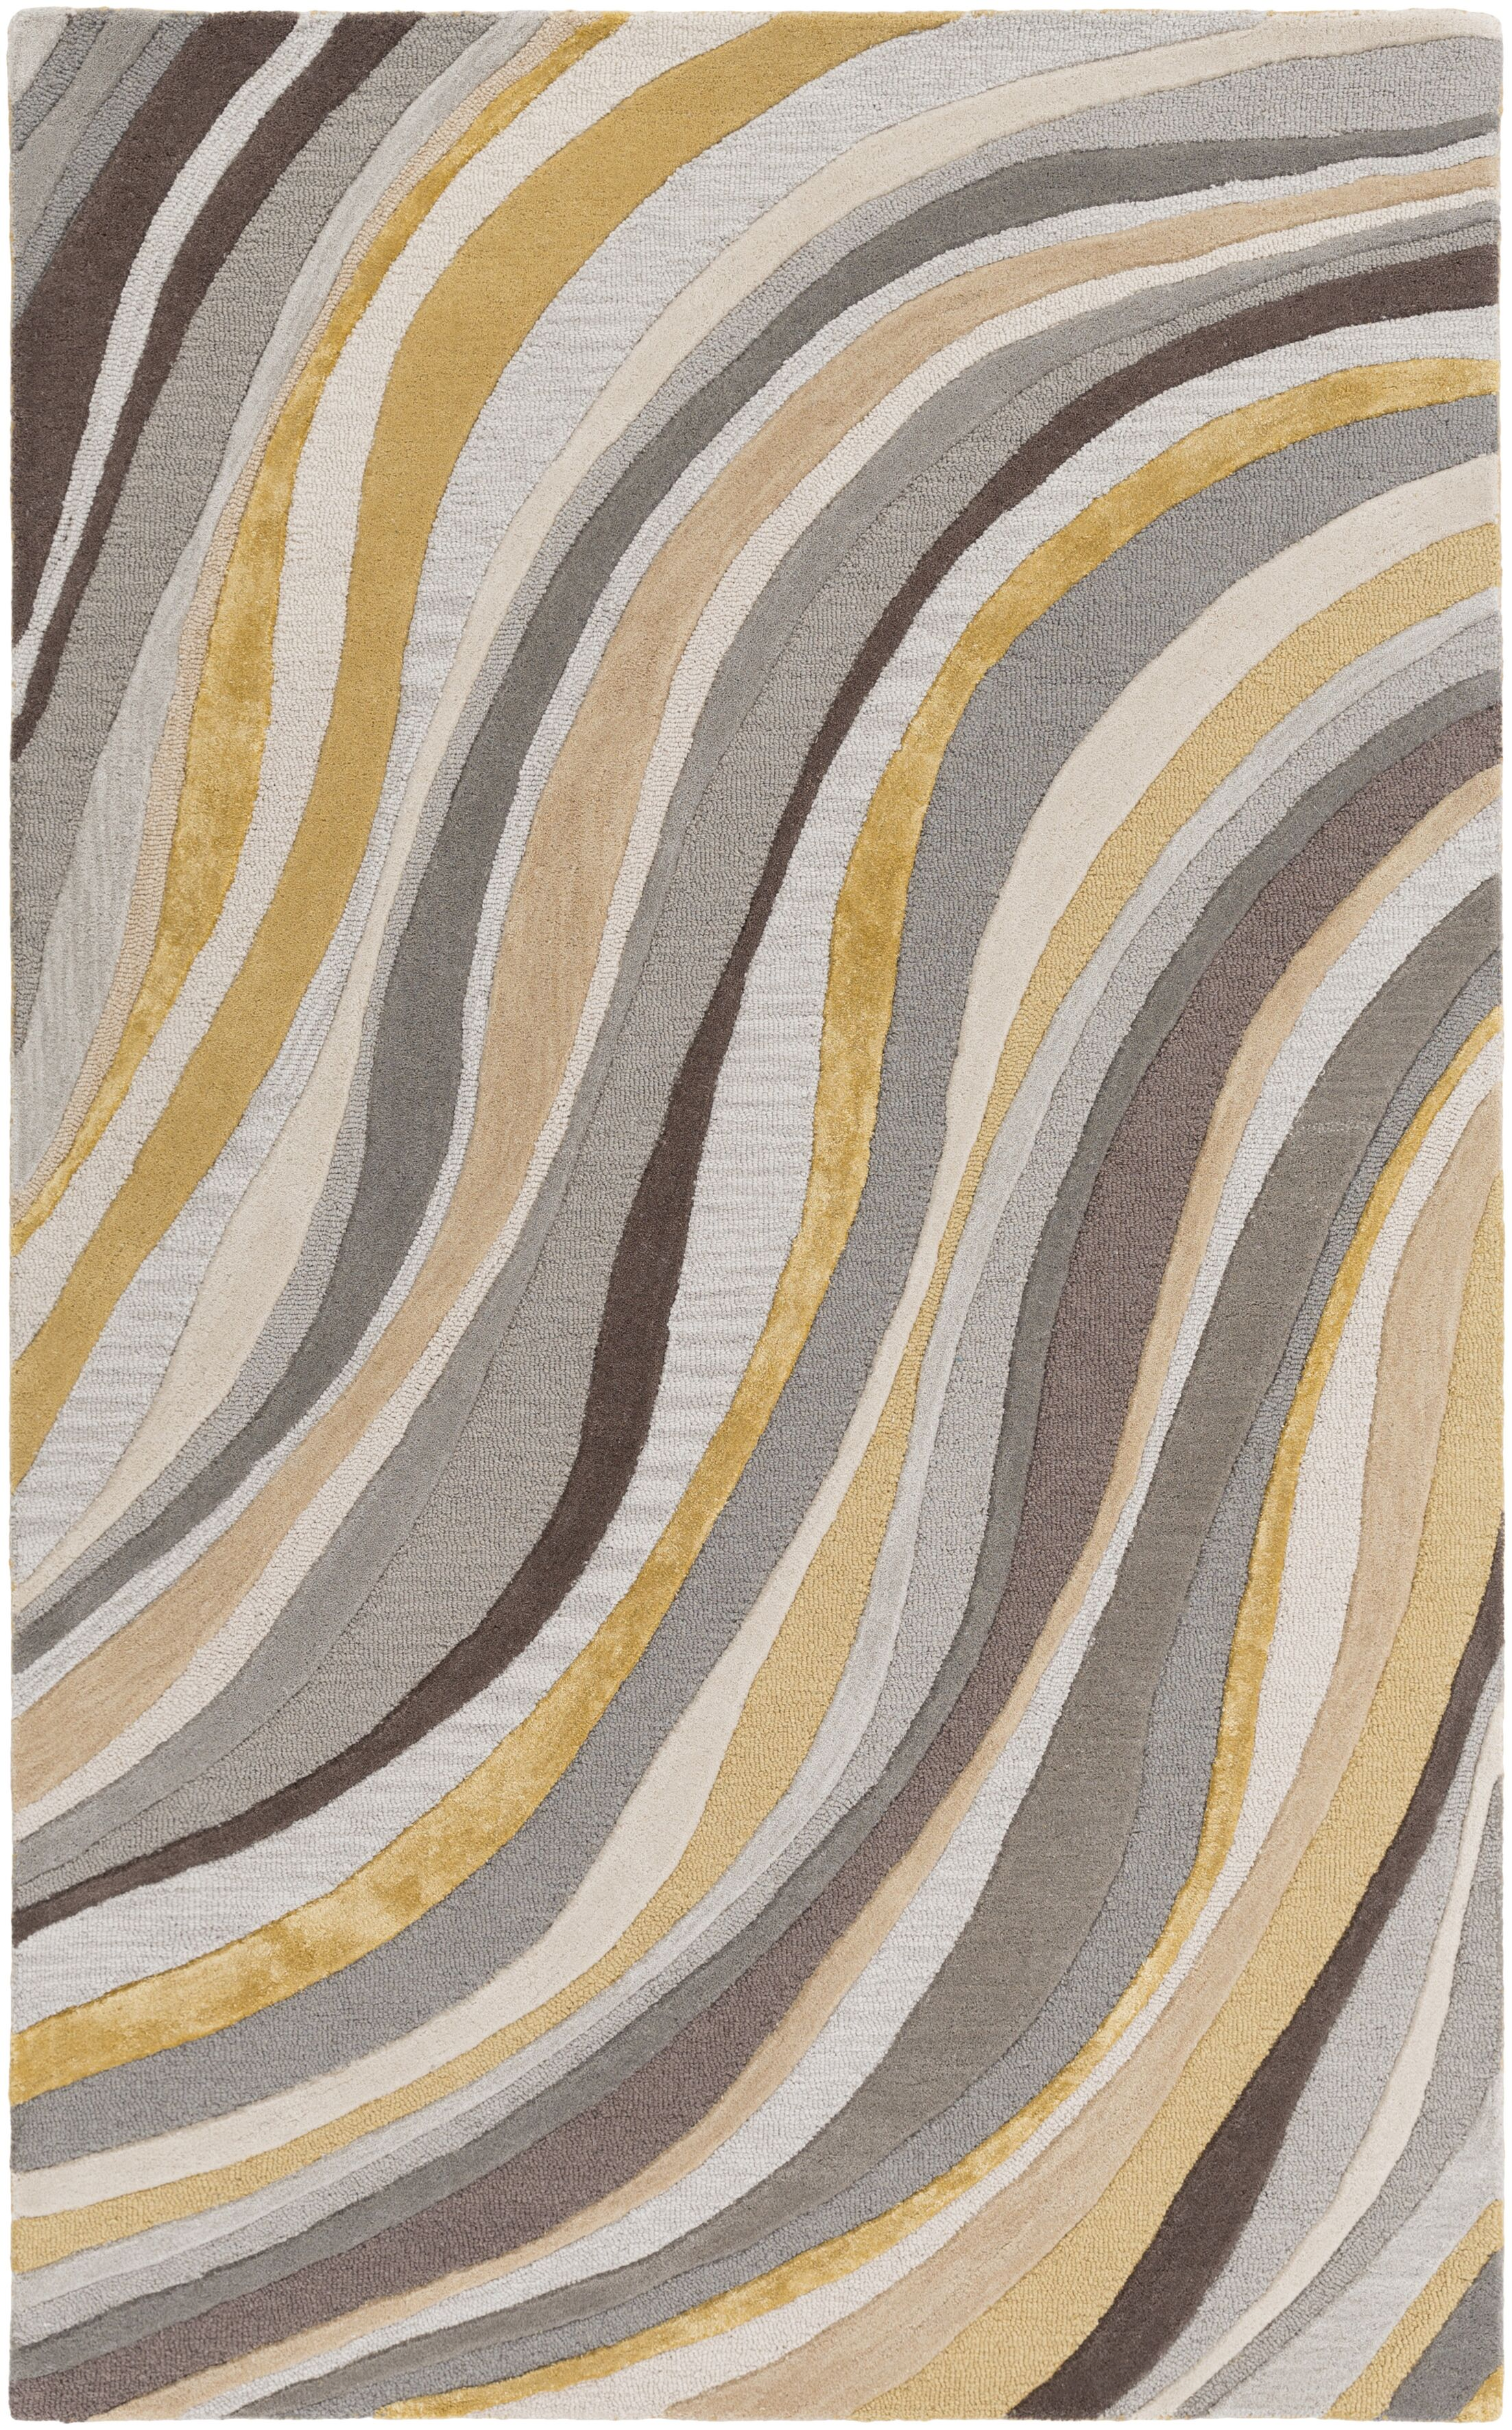 Pena Hand-Tufted Gray/Gold Area Rug Rug Size: Runner 2' x 8'